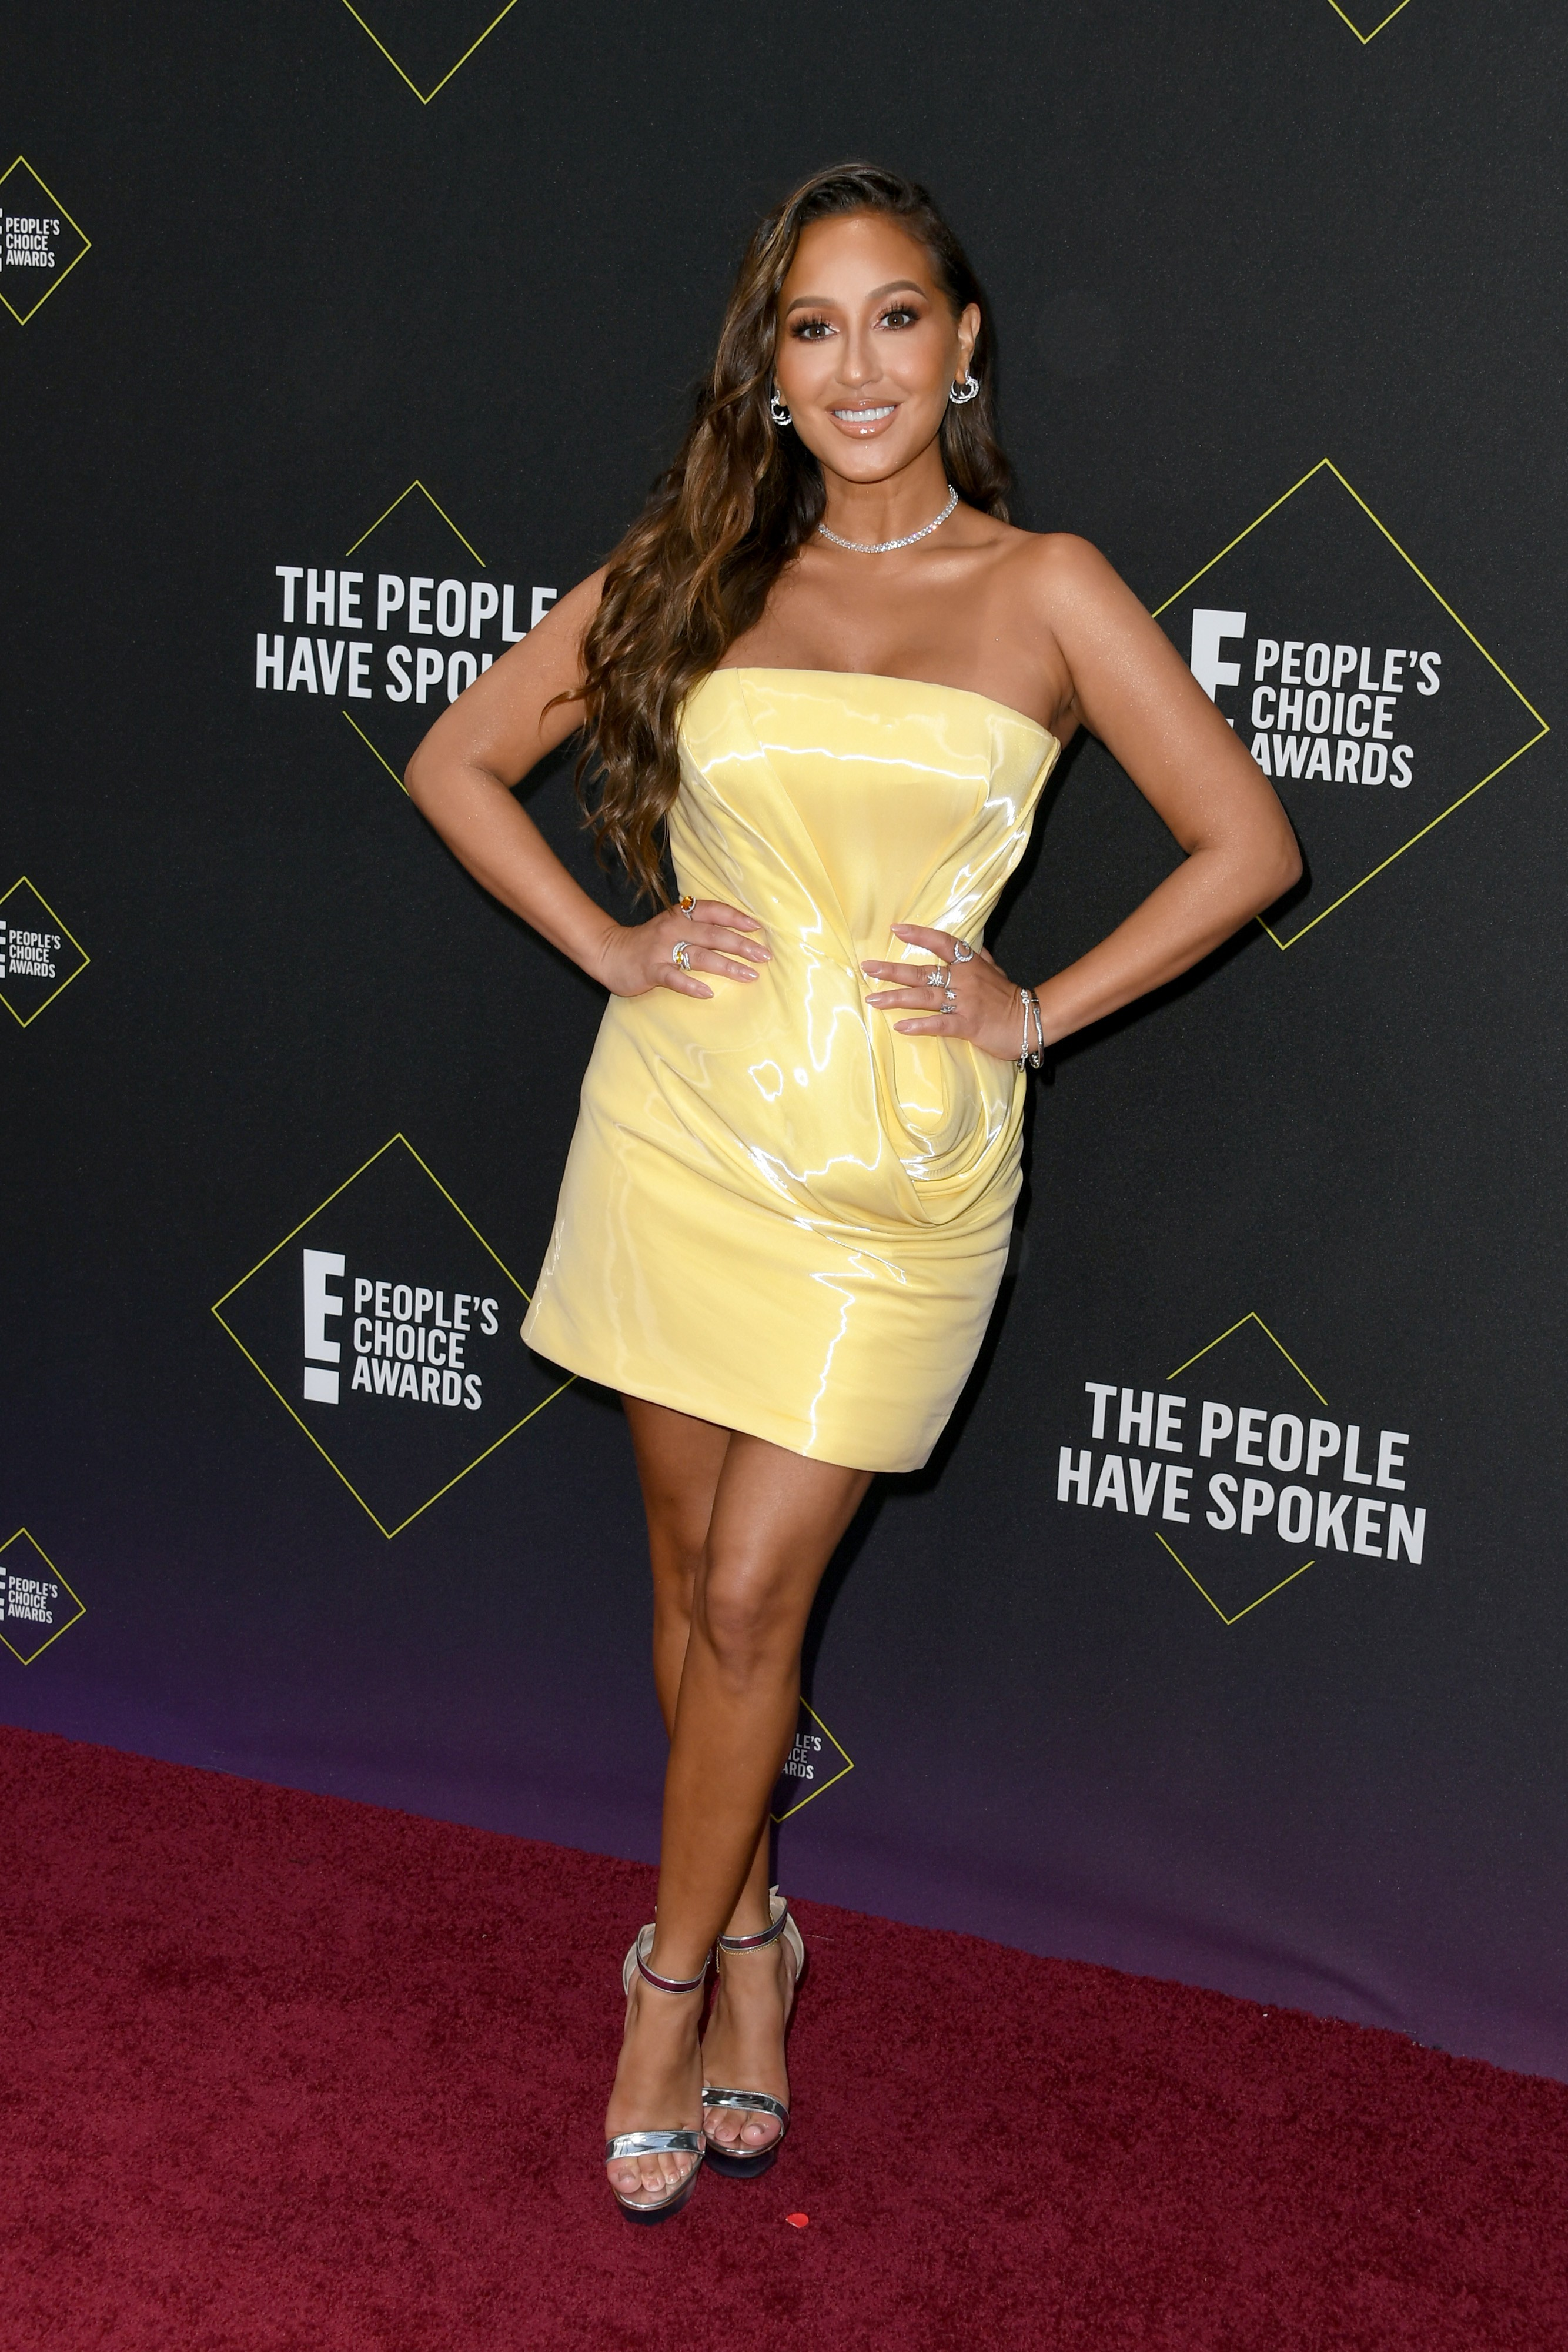 Adrienne Houghton (Foto: FilmMagic/Getty Images)